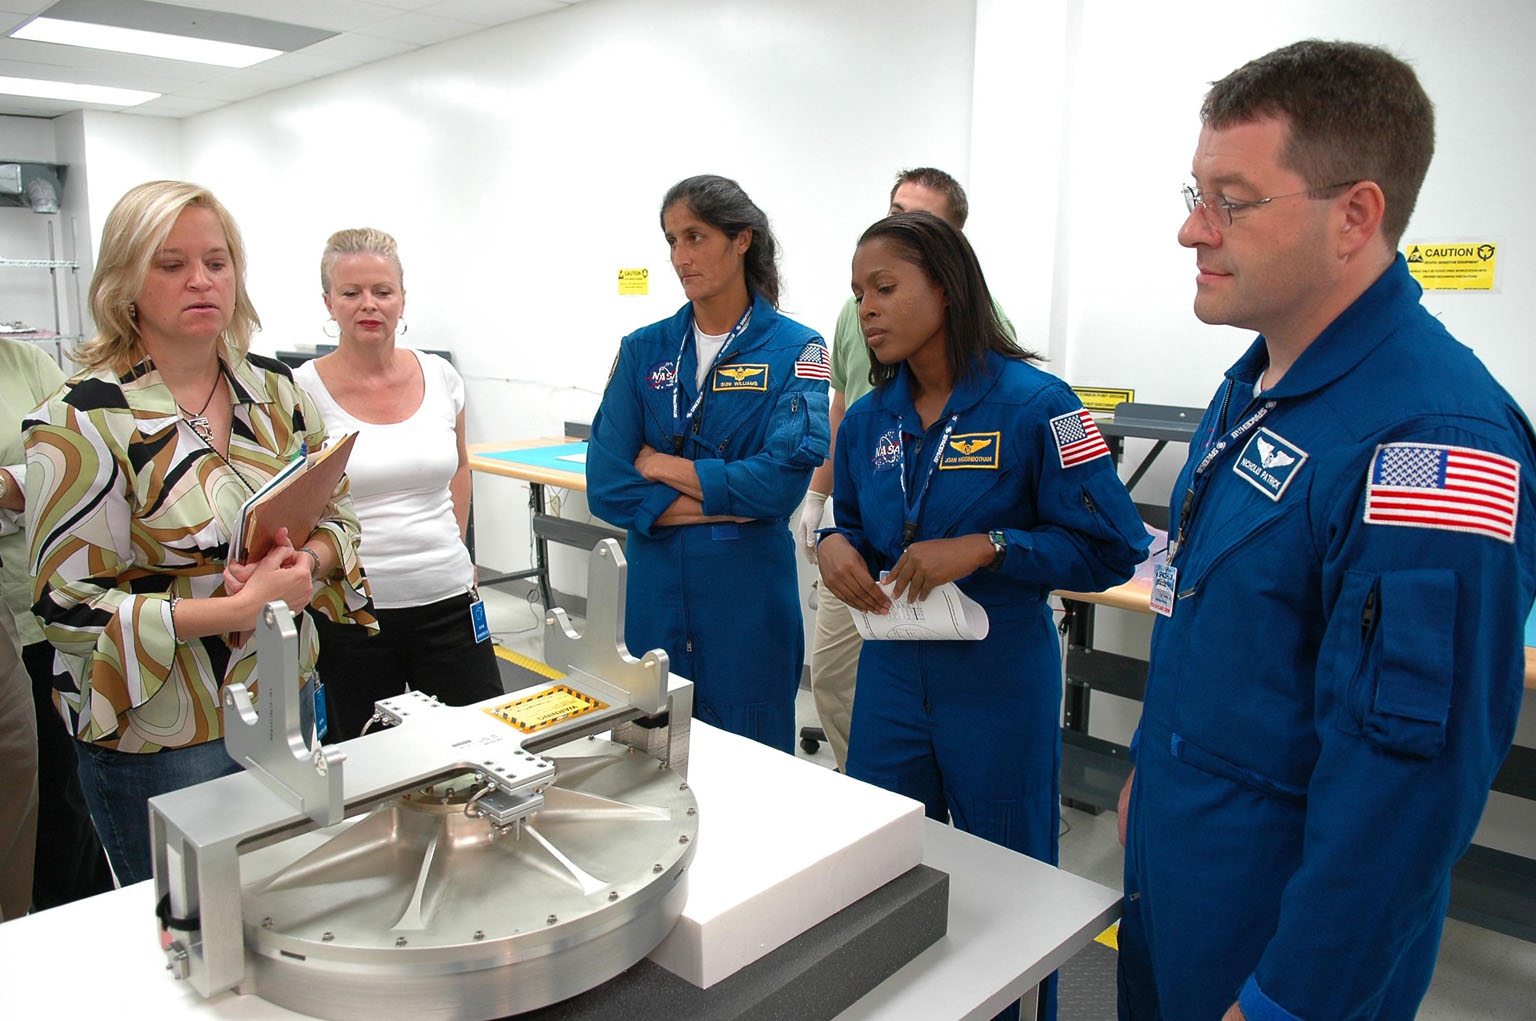 KENNEDY SPACE CENTER, FLA. - Inside the SPACEHAB Payload Processing Facility at Port Canaveral, Fla., STS-116 Mission Specialists (from left) Sunita Williams, Joan Higginbotham and Nicholas Patrick look over flight hardware during the Crew Equipment Interface Test. Mission crews make frequent trips to the Space Coast to become familiar with the equipment and payloads they will be using. STS-116 will be mission No. 20 to the International Space Station and construction flight 12A.1. The mission payload is the SPACEHAB module, the P5 integrated truss structure and other key components. Launch is scheduled for no earlier than Dec. 7. Photo credit: NASA/Kim Shiflett